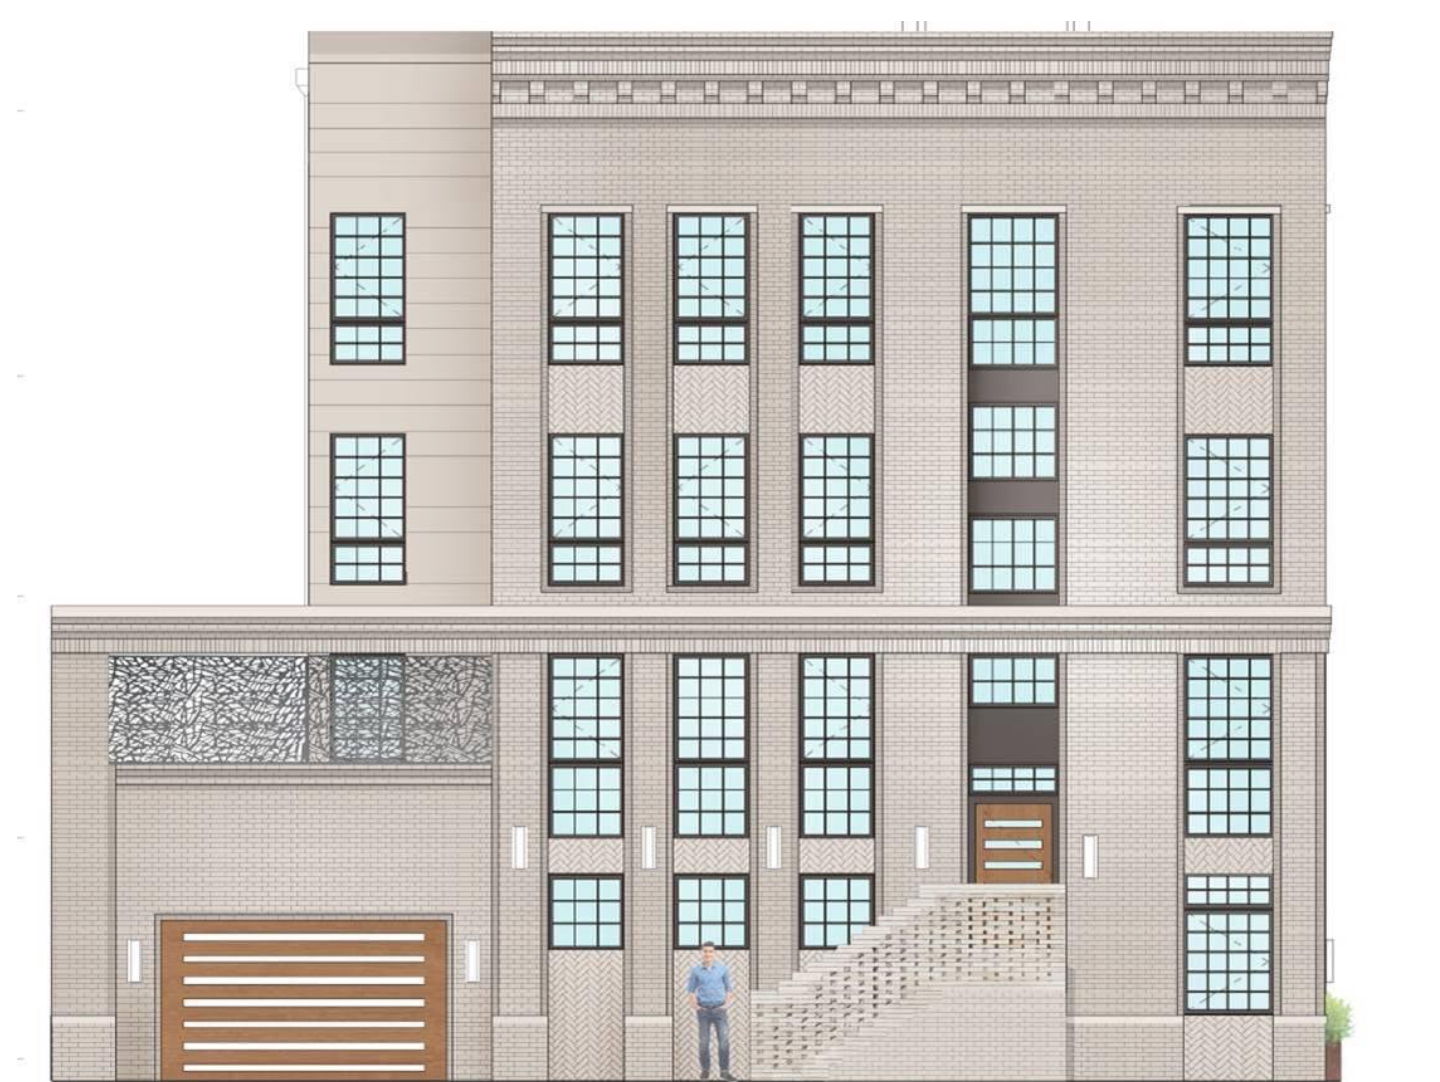 Rendering of 316-20 South 11th Street.